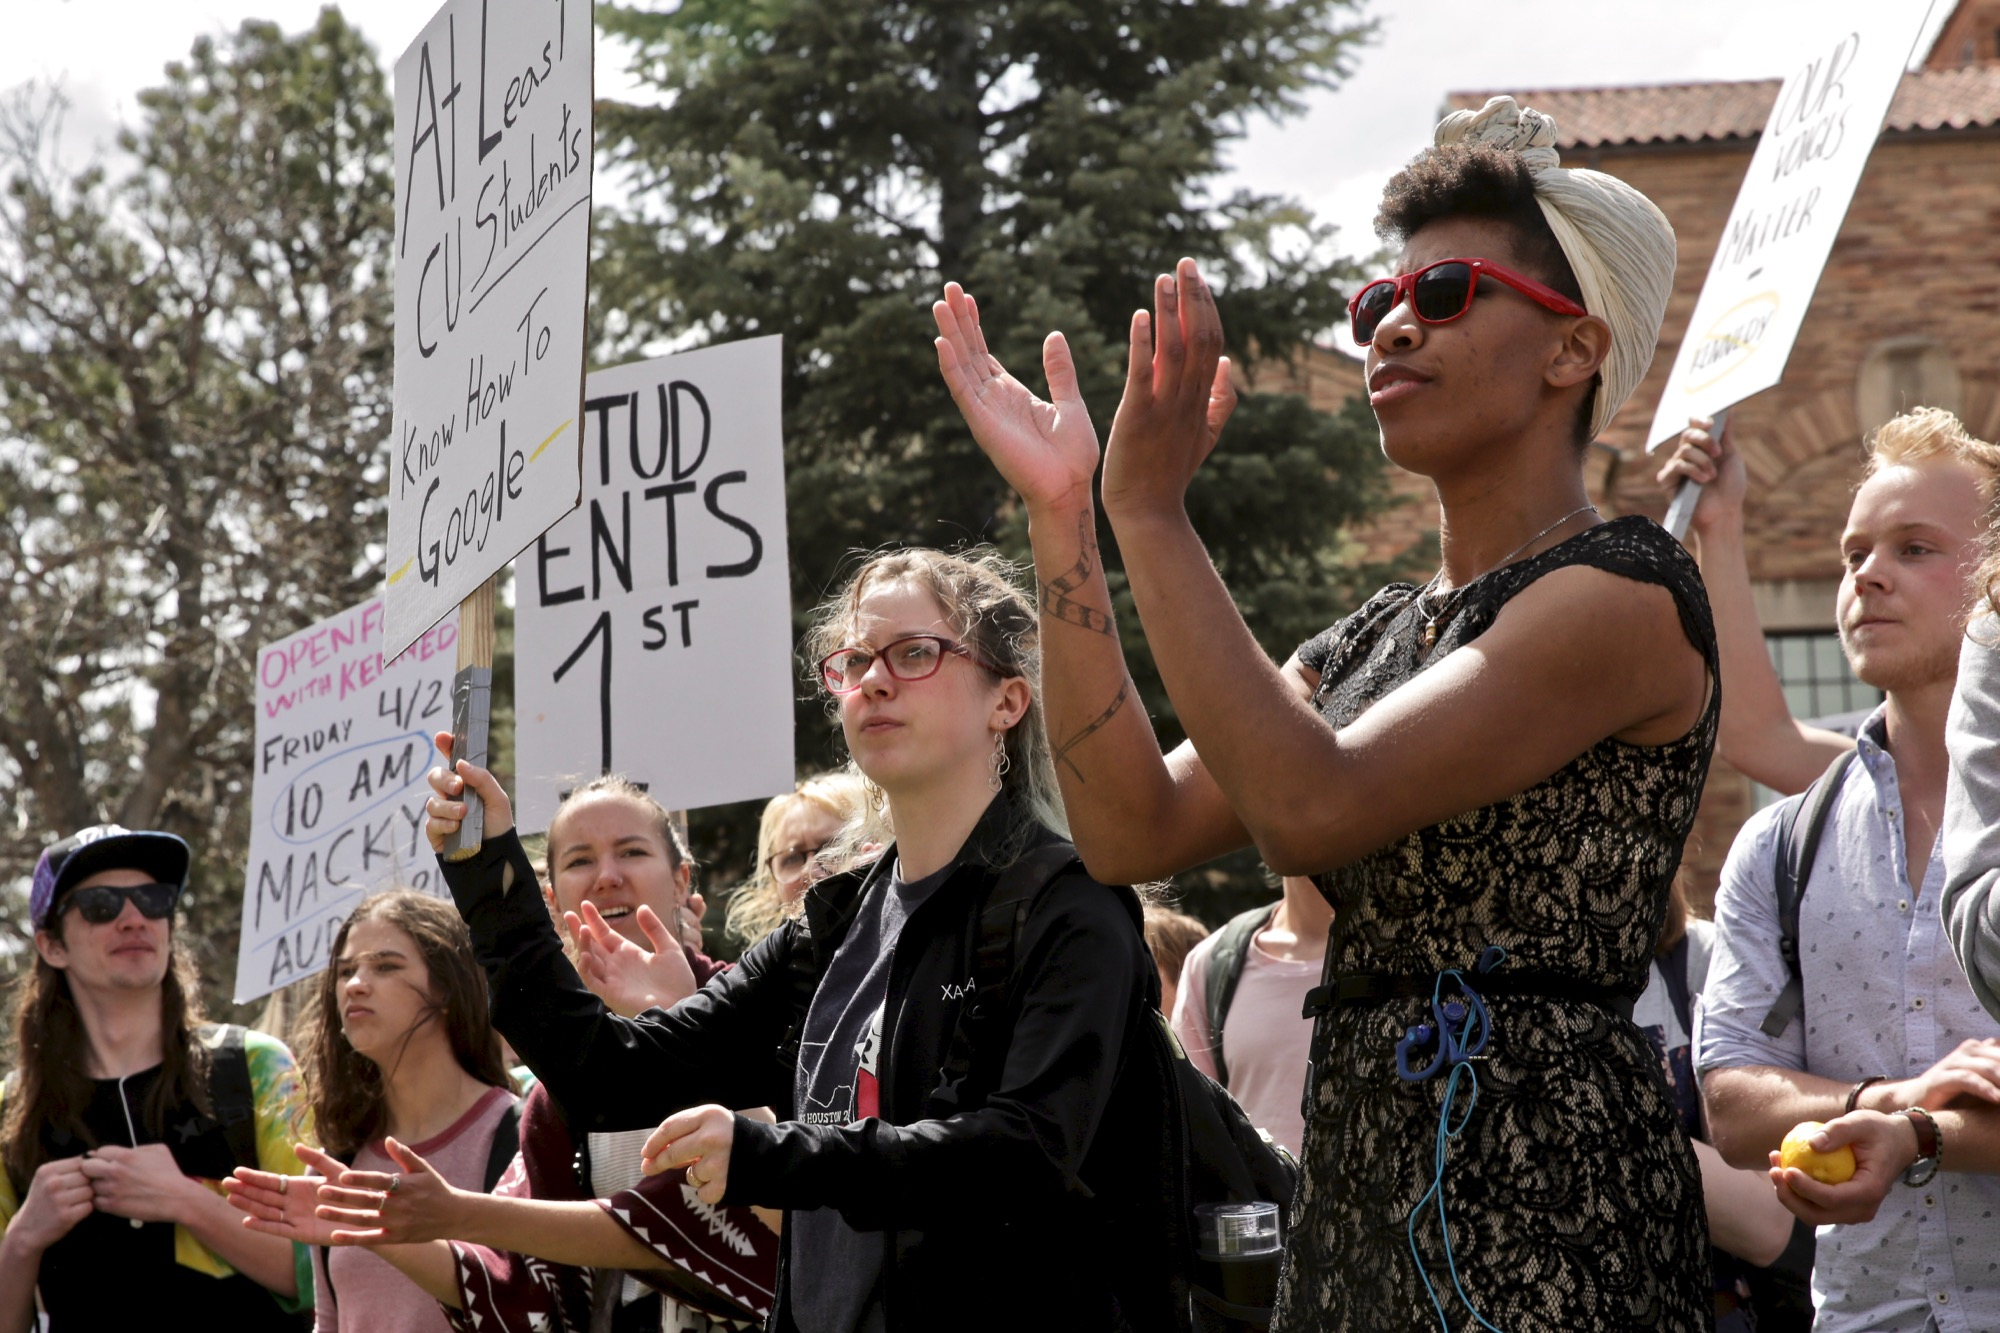 Photo: CU Boulder Campus Protest Against Mark Kennedy 2 HV 20190415